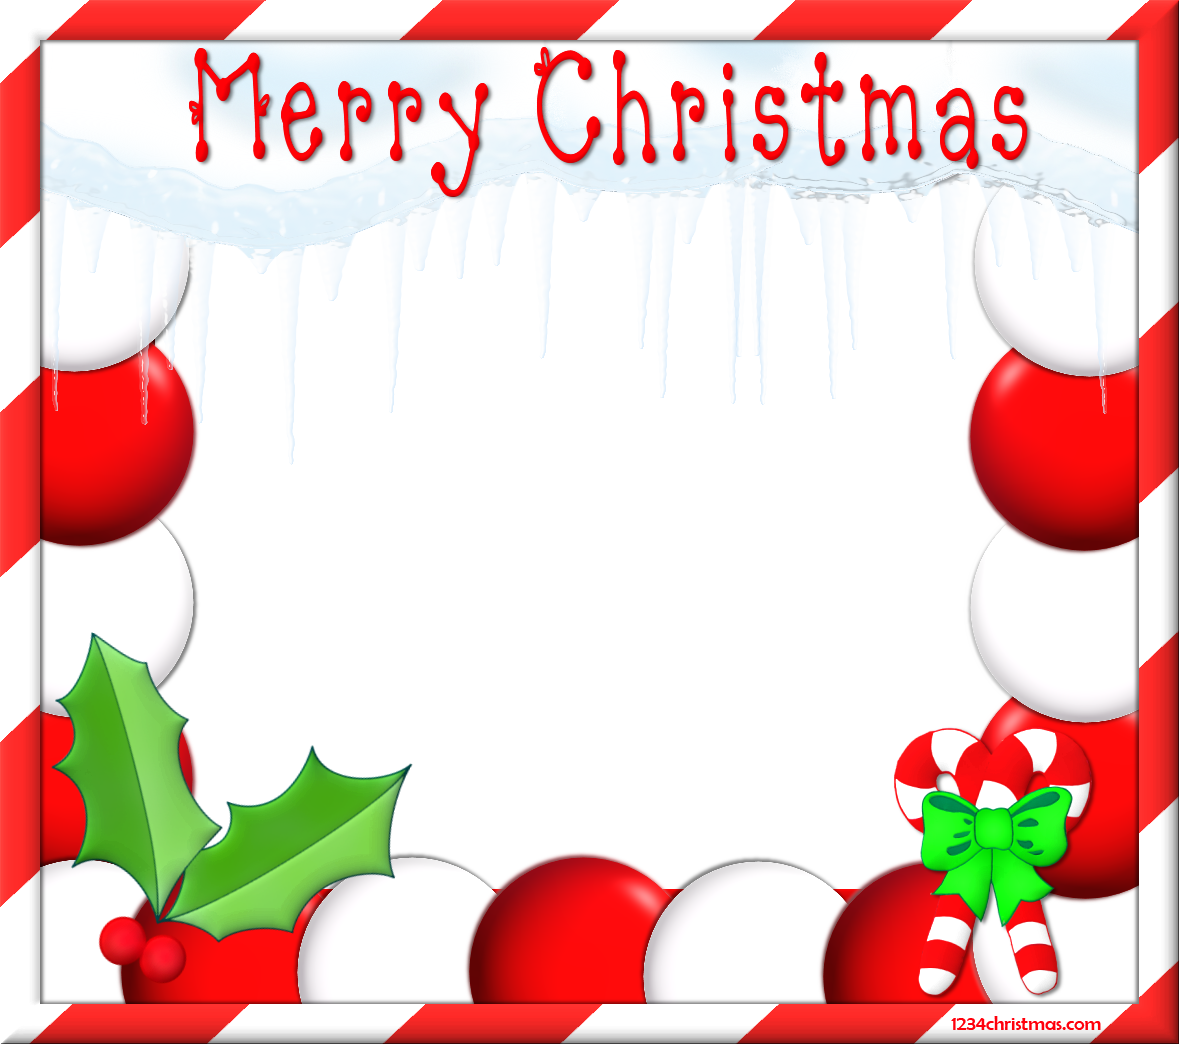 Free christmas clipart download clip royalty free Xmas Free Christmas Photo Frame Templates for FREE Download | Merry ... clip royalty free